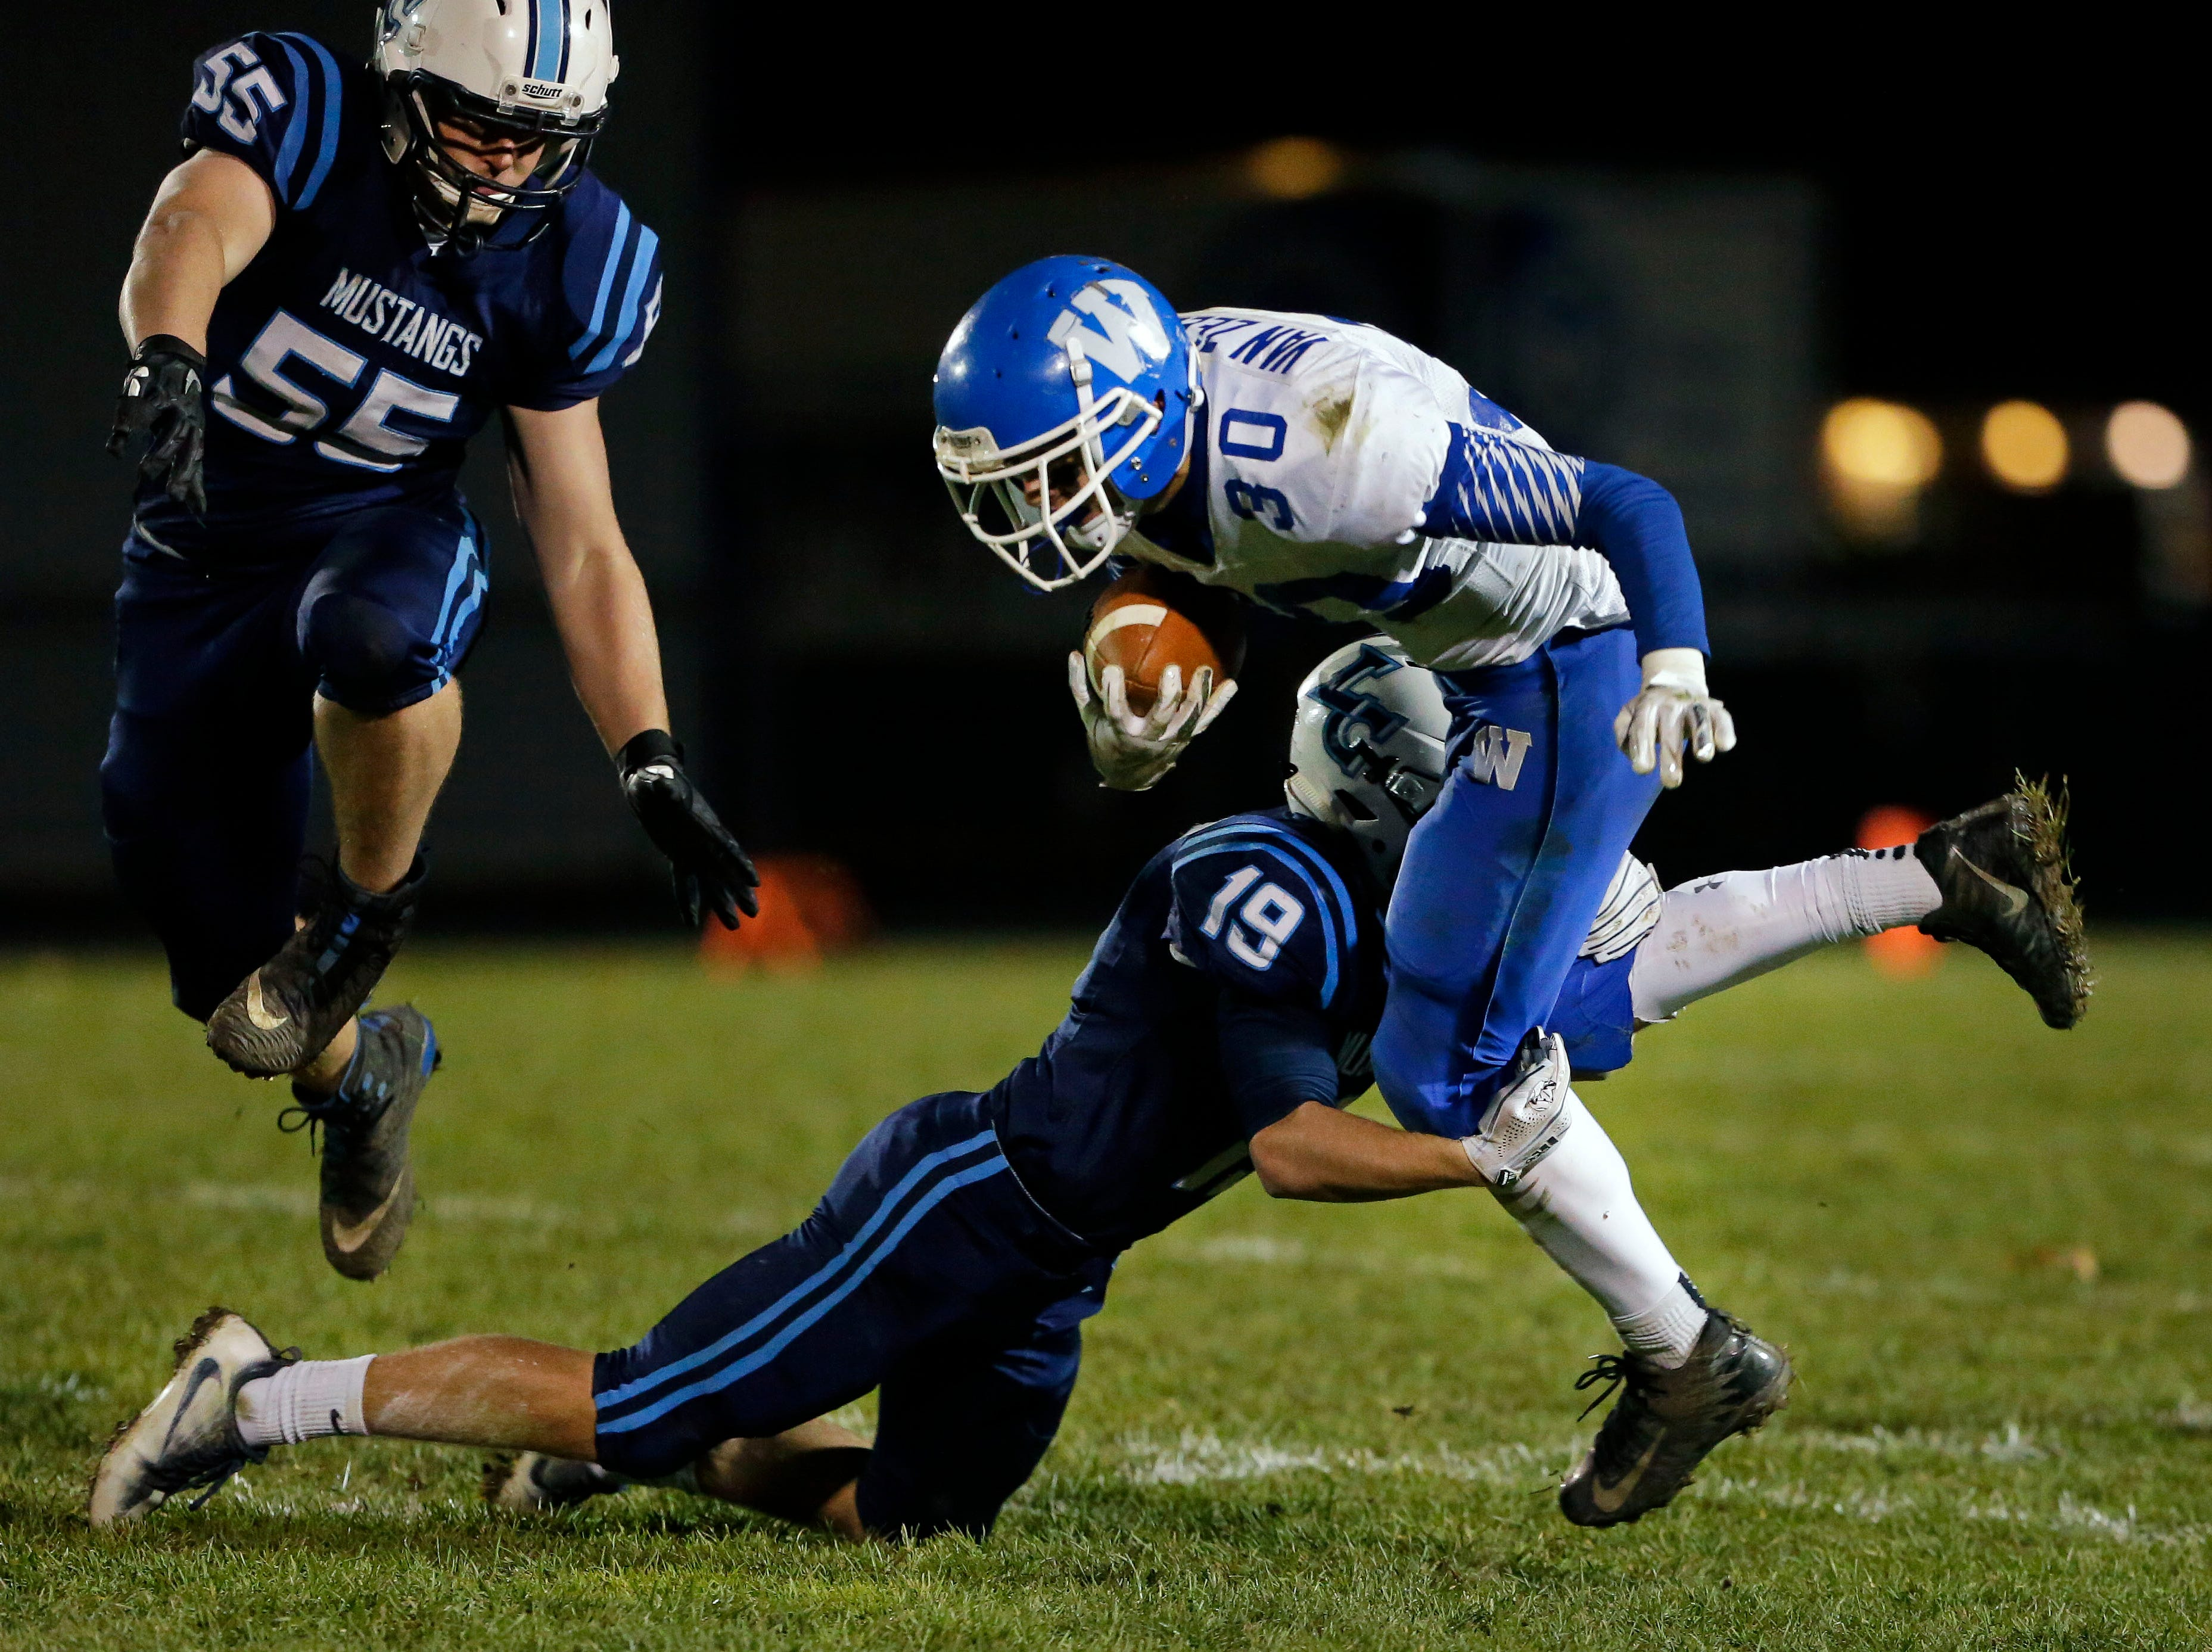 Jacob Lillge of Little Chute tackles Jeremy Van Zeeland of Wrightstown in a WIAA Division 4 Level 3 playoff game Friday, November 2, 2018, at Fitzpatrick Field in Little Chute, Wis.Ron Page/USA TODAY NETWORK-Wisconsin